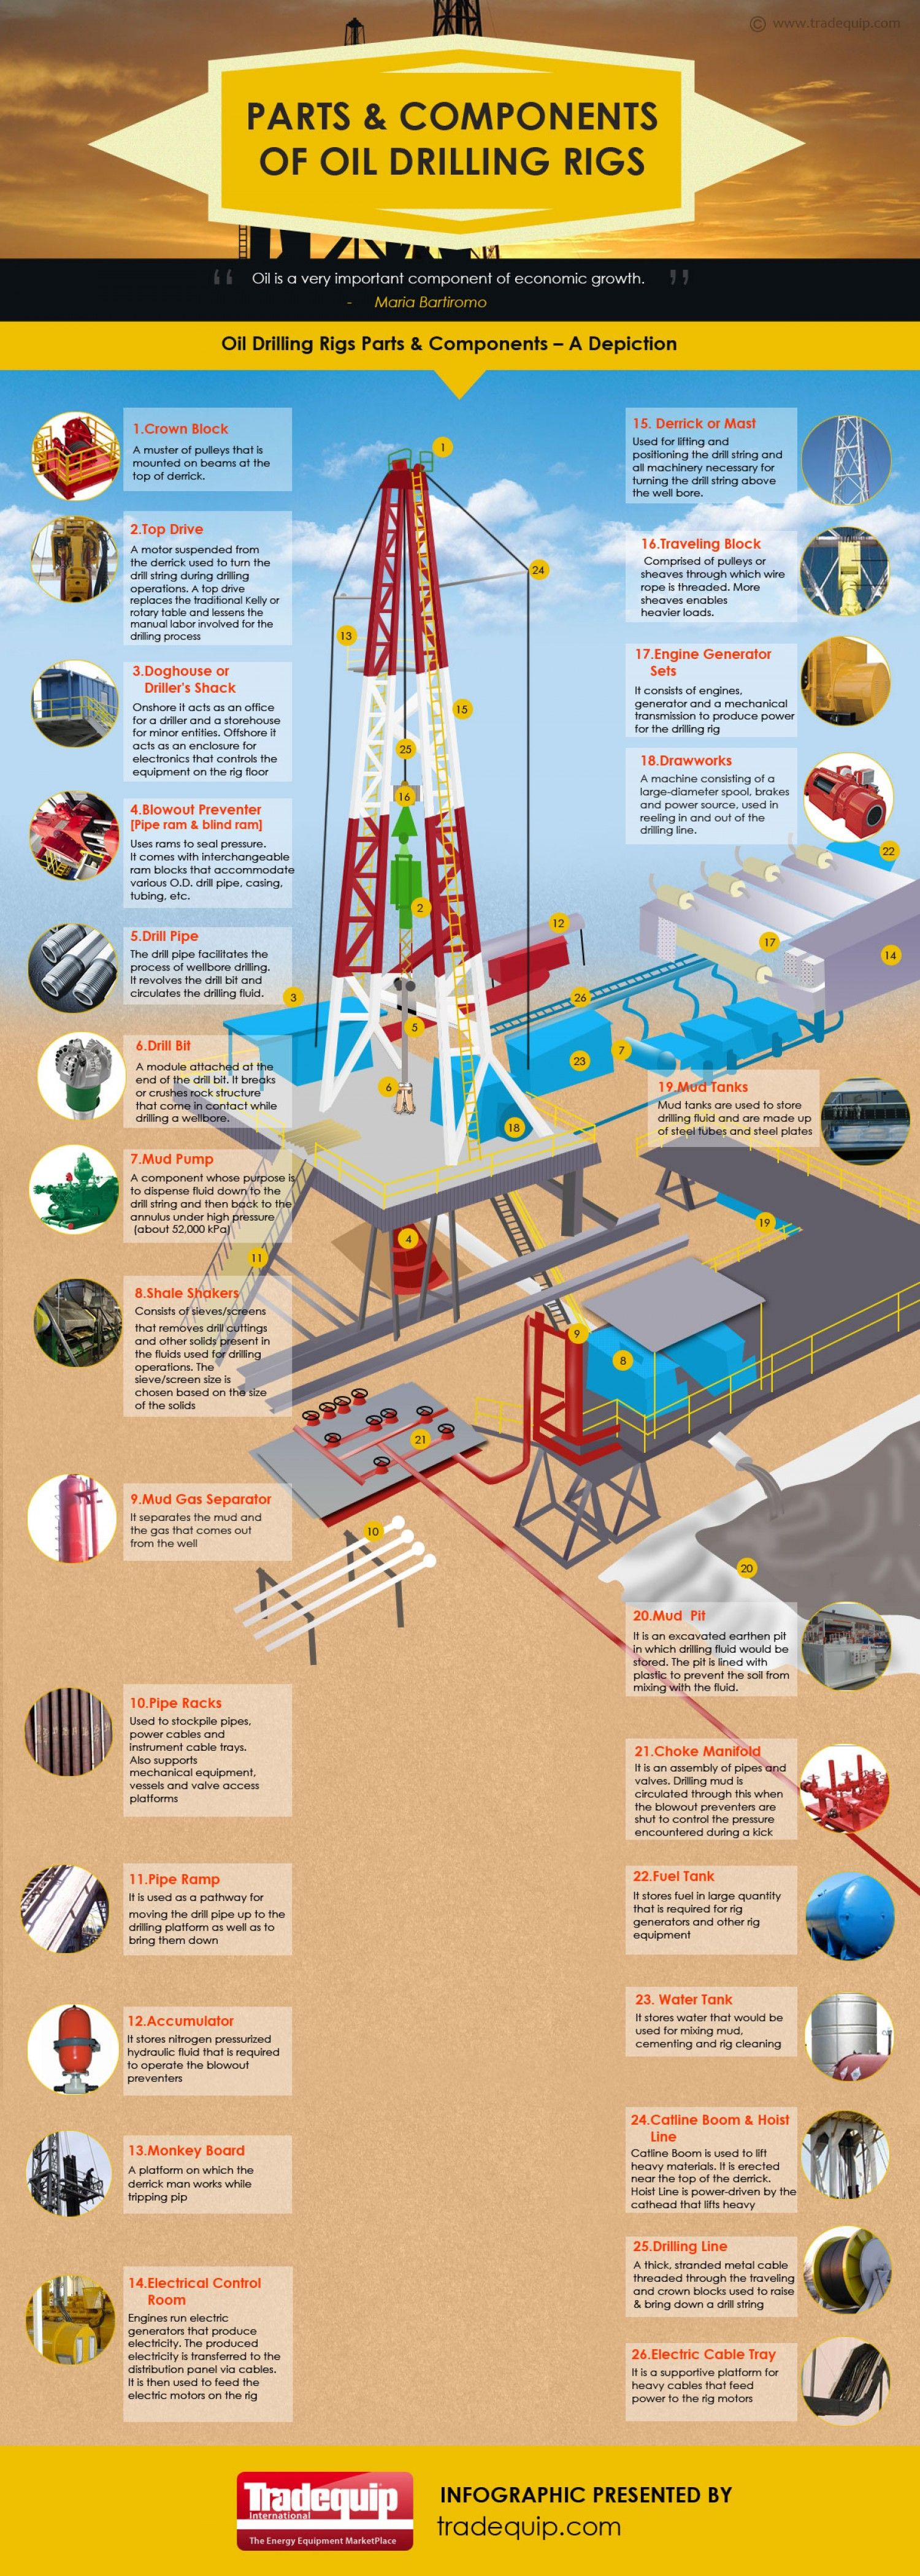 Parts and Components of Oil Drilling Rigs Infographic   Education